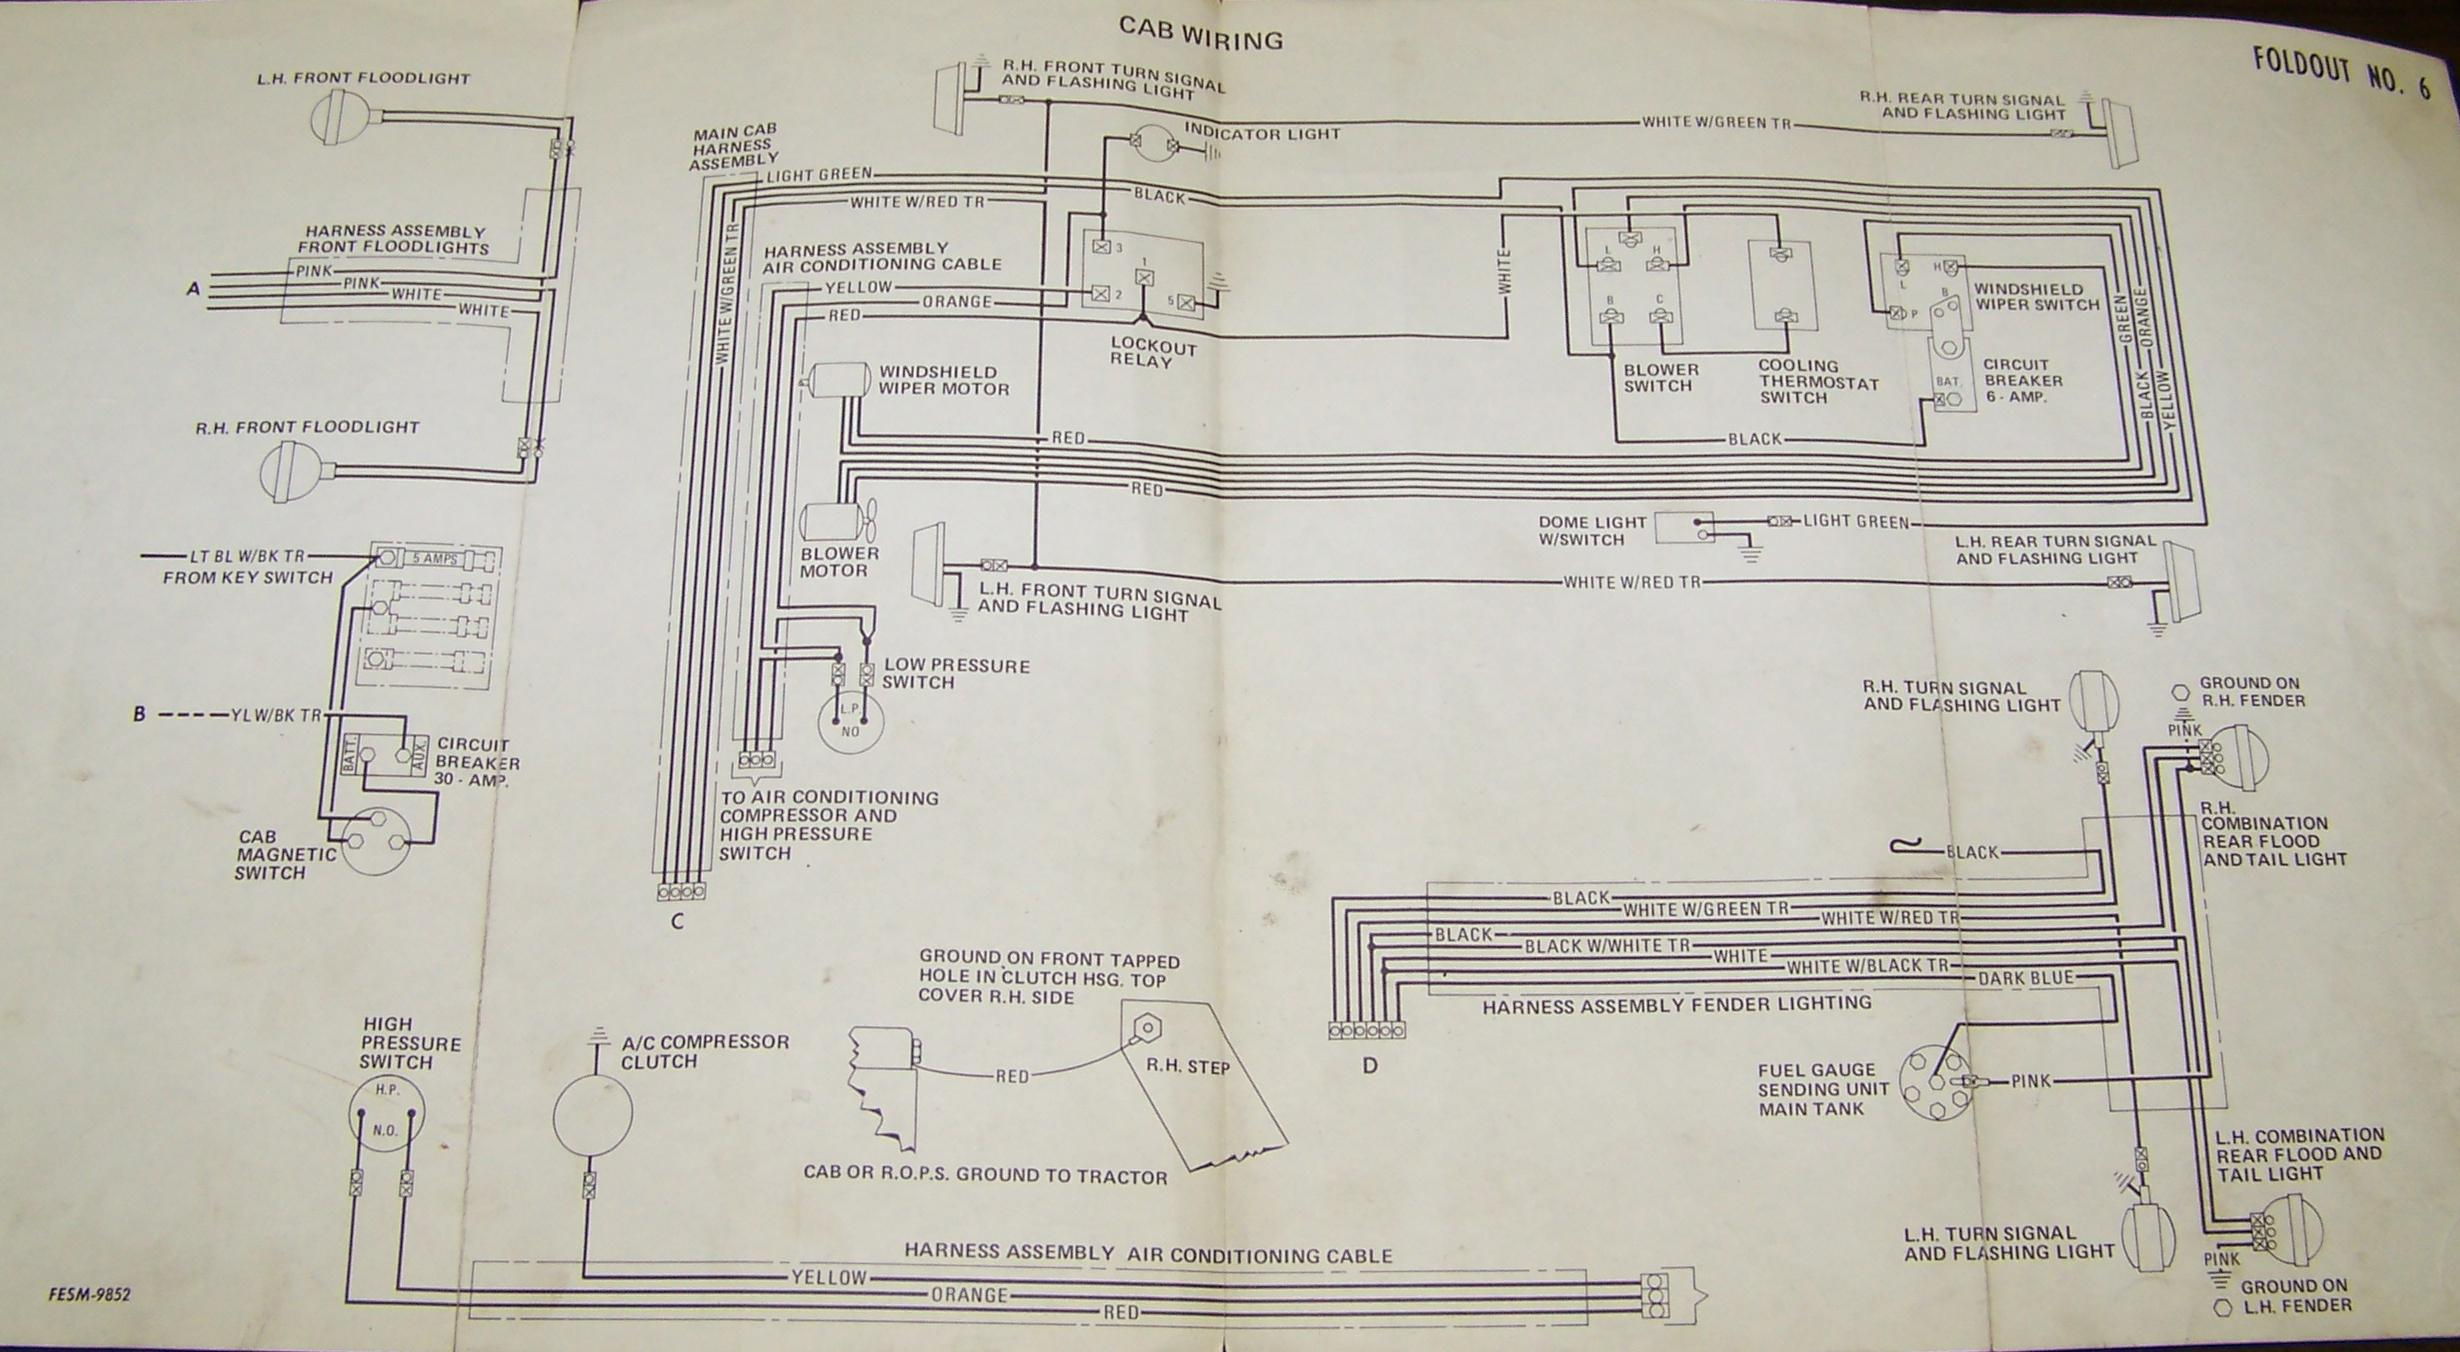 carter gruenewald co inc ih farmall tractor electrical wiring rh cngco com Farmall Cub Wiring-Diagram farmall 460 diesel wiring diagram